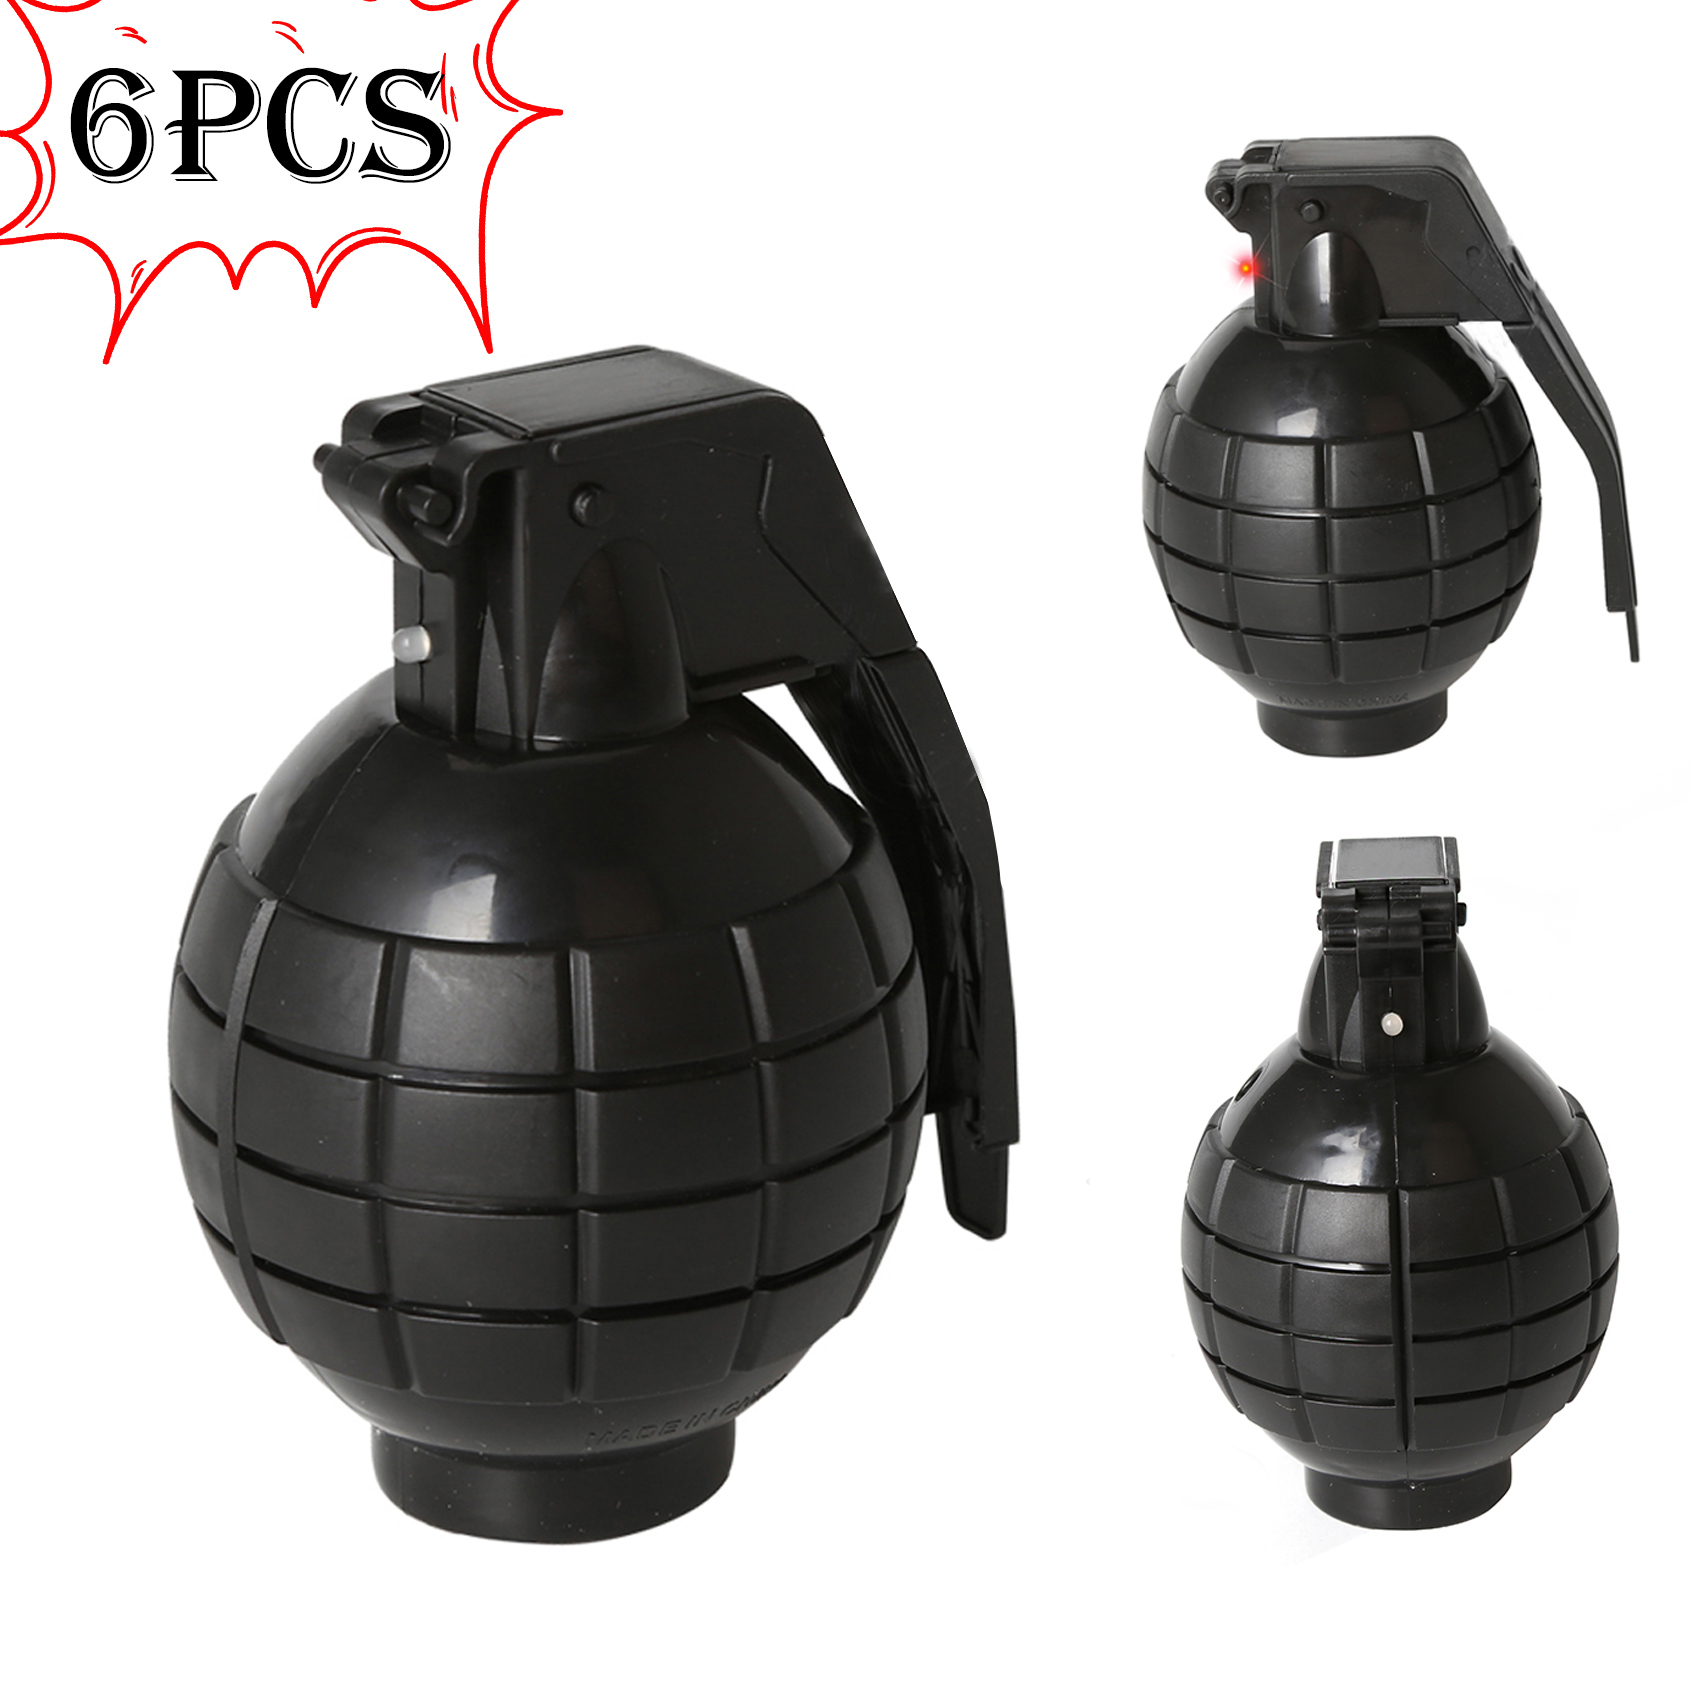 6PCS Toy Hand Grenades Pretend Toys Action Commando Series Musical Toys Occupations Toy With Lights And Sounds For Kid